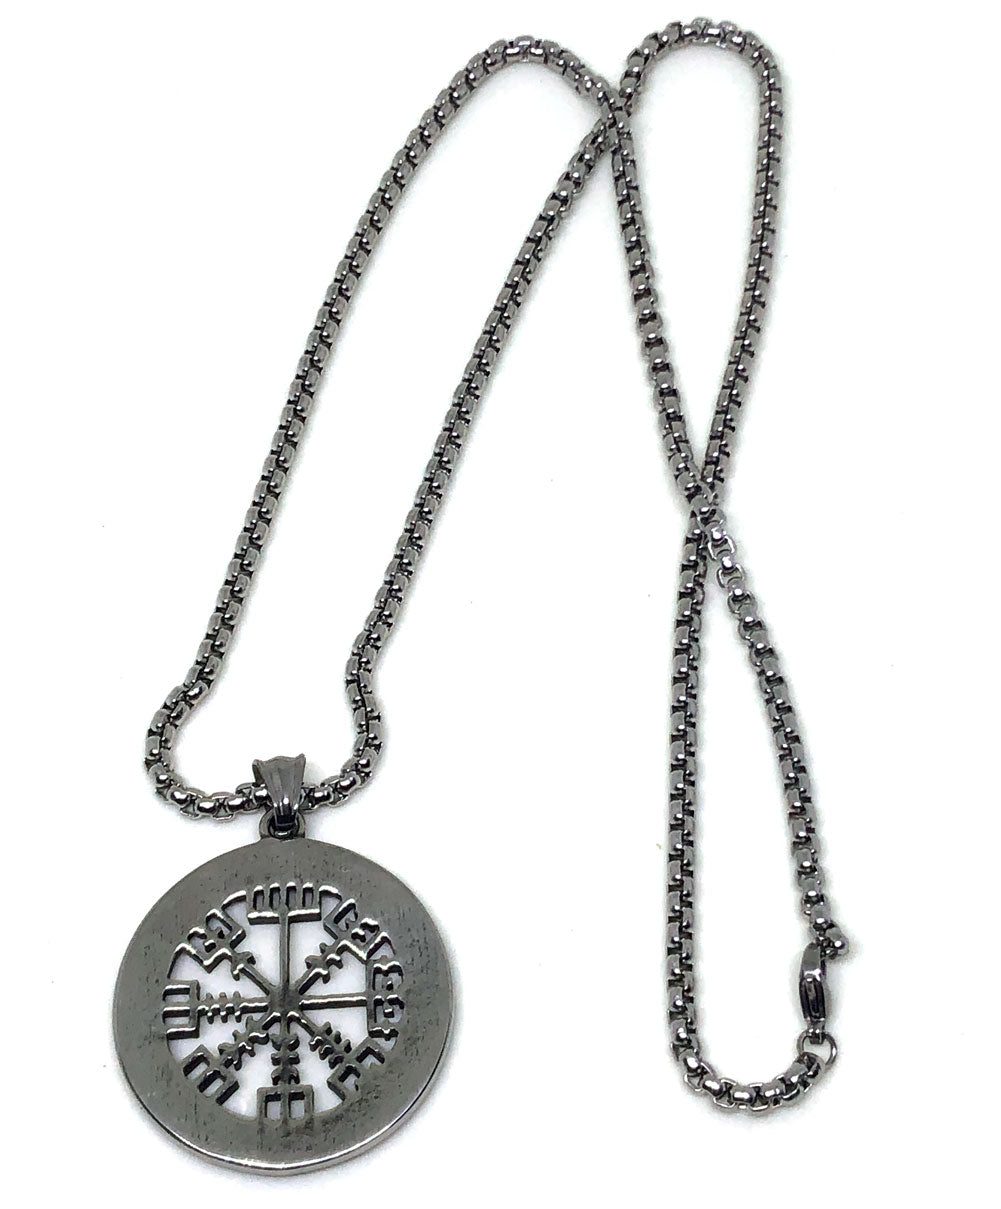 Viking Necklace - Stainless Steel Vegvisir Runic Compass Pendant - Full view back